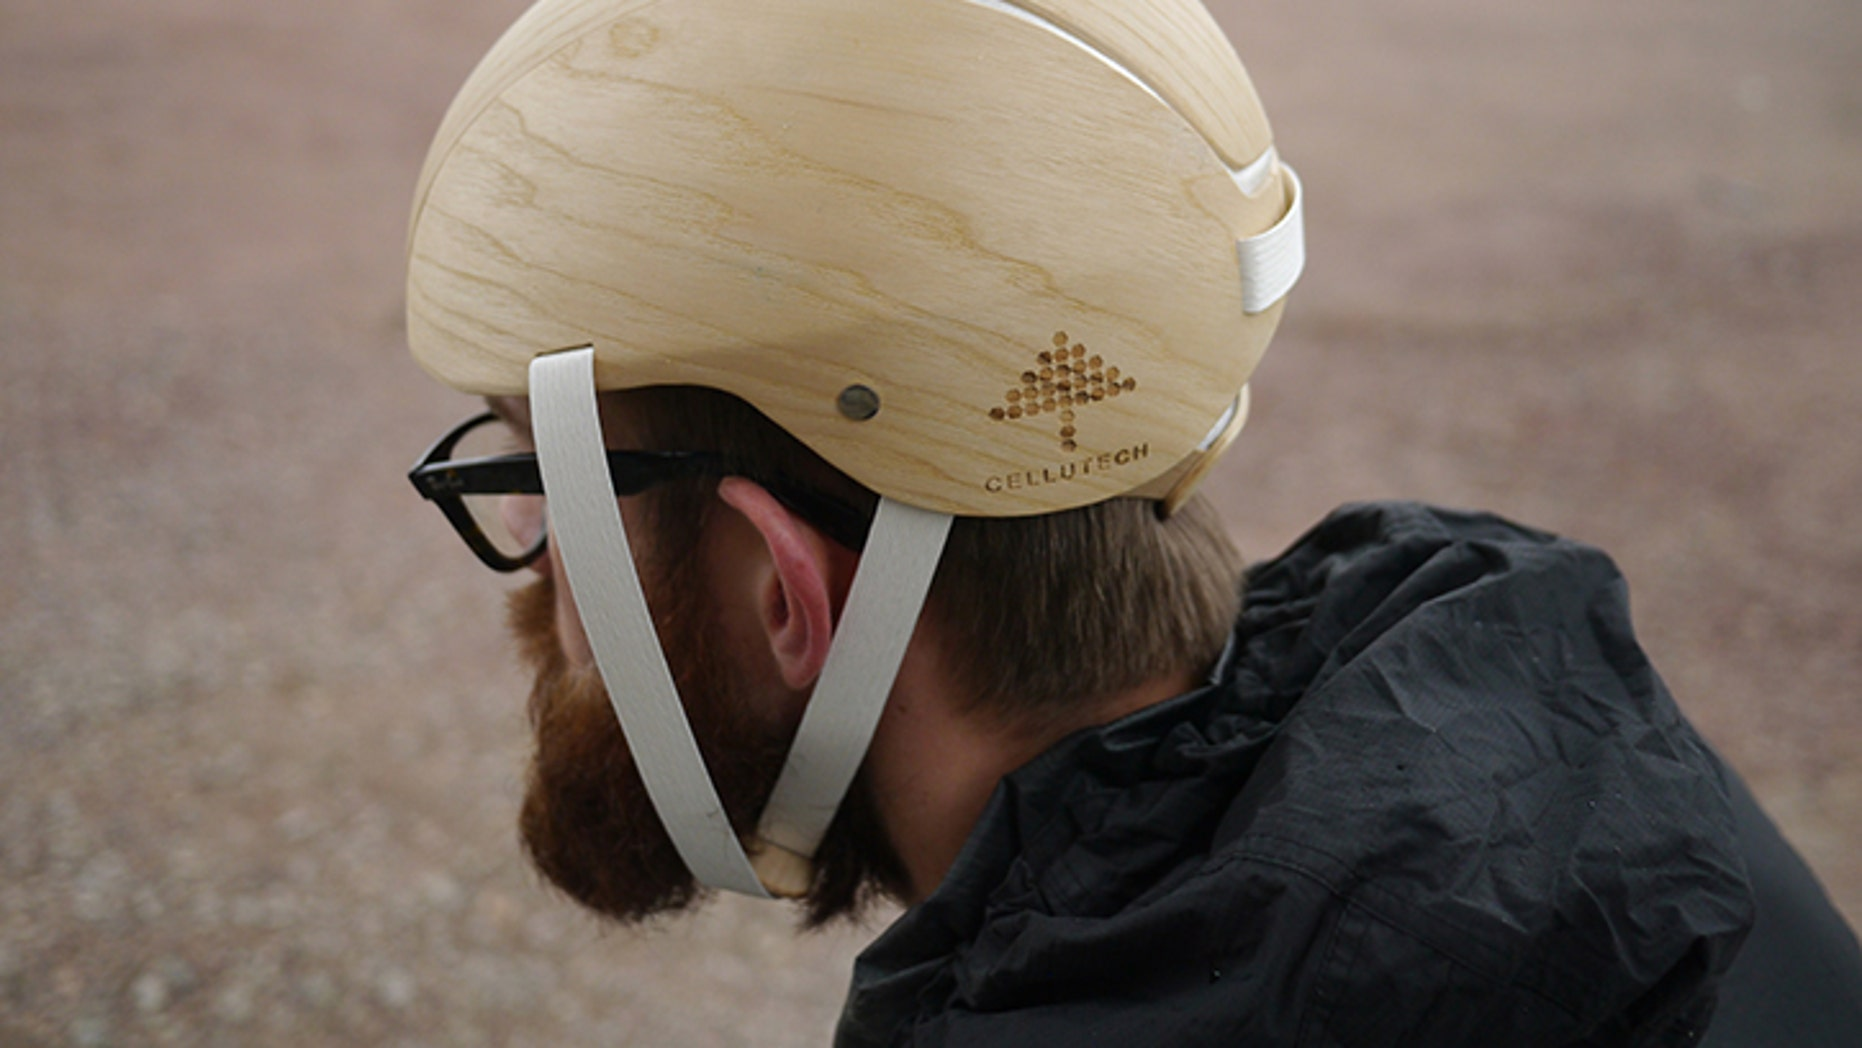 This prototype bicycle helmet is made entirely from forest products — particularly the foam shock absorbing material, which was developed at KTH. (Photo: Cellutech)